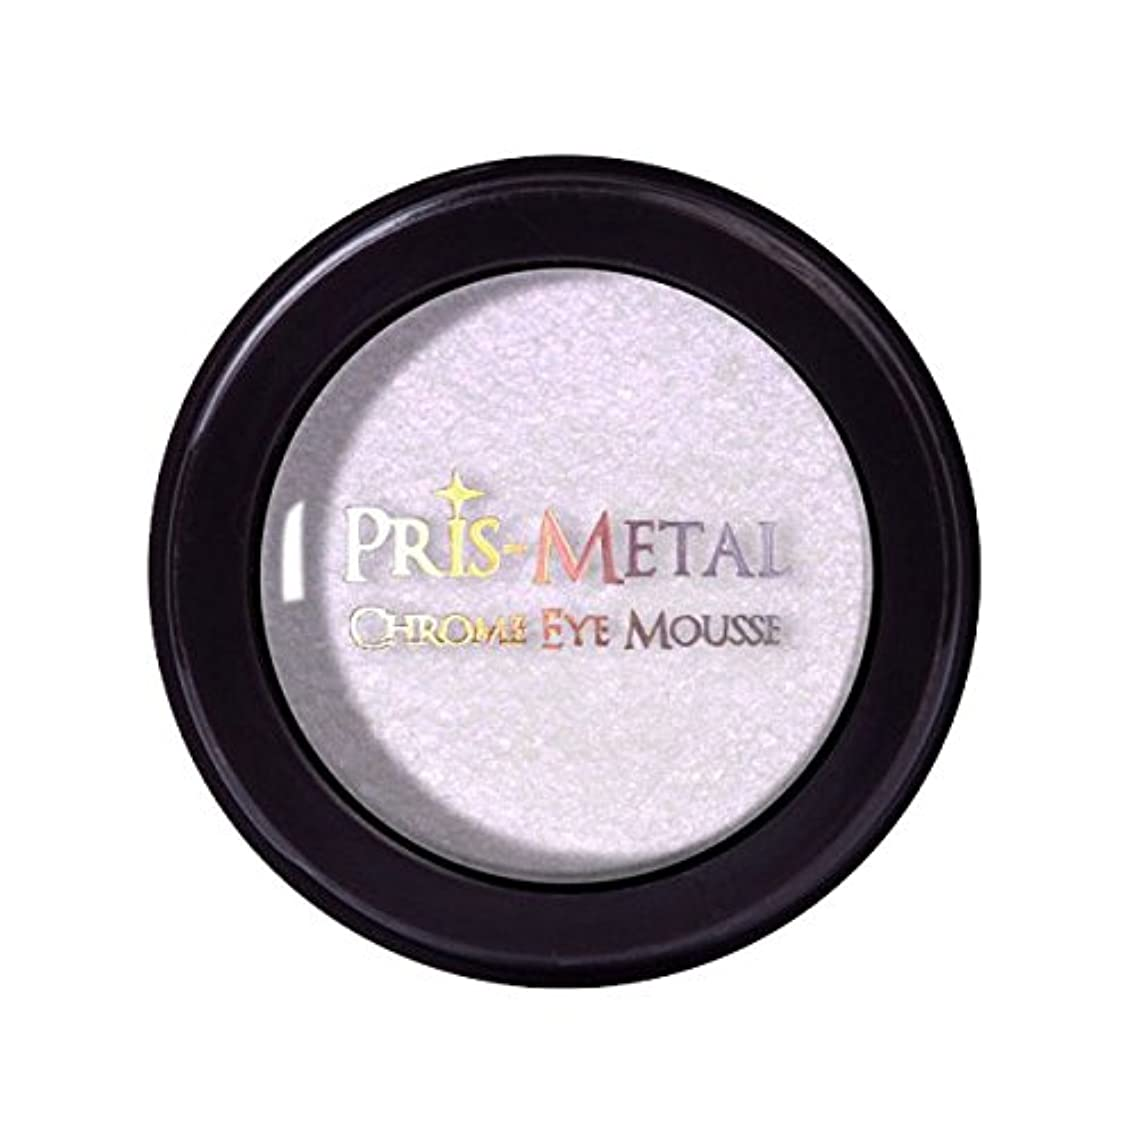 ギャング呼ぶ第二(3 Pack) J. CAT BEAUTY Pris-Metal Chrome Eye Mousse - Pinky Promise (並行輸入品)